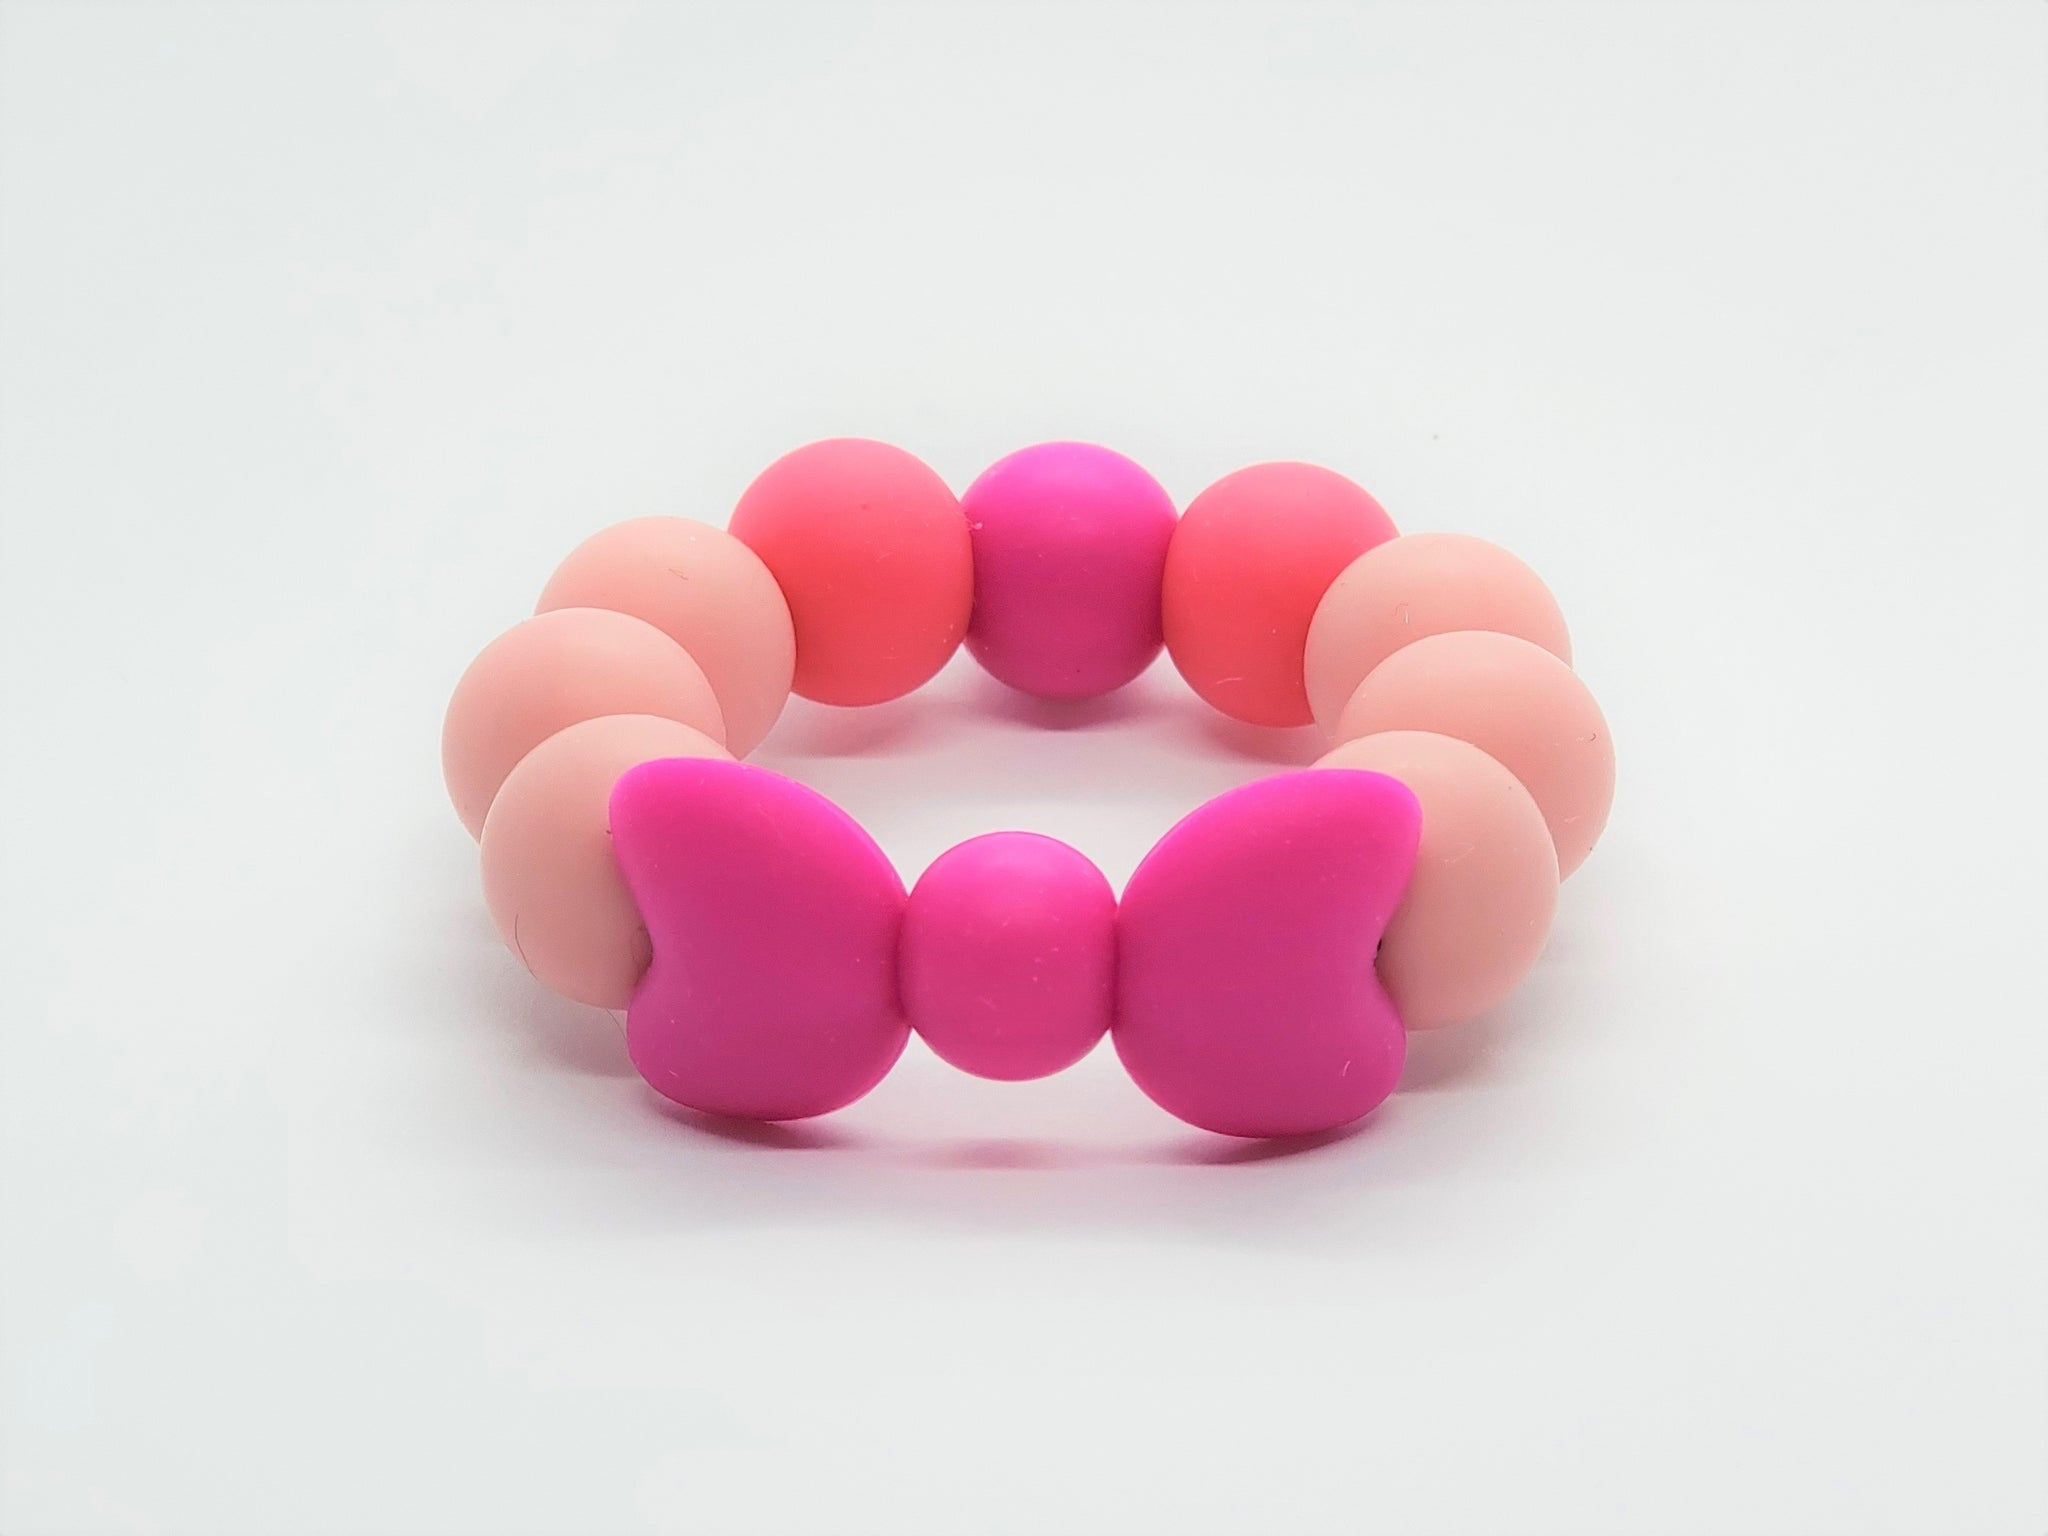 Silicone Teether Bracelet with Bows - Petite - Pink Lemonade